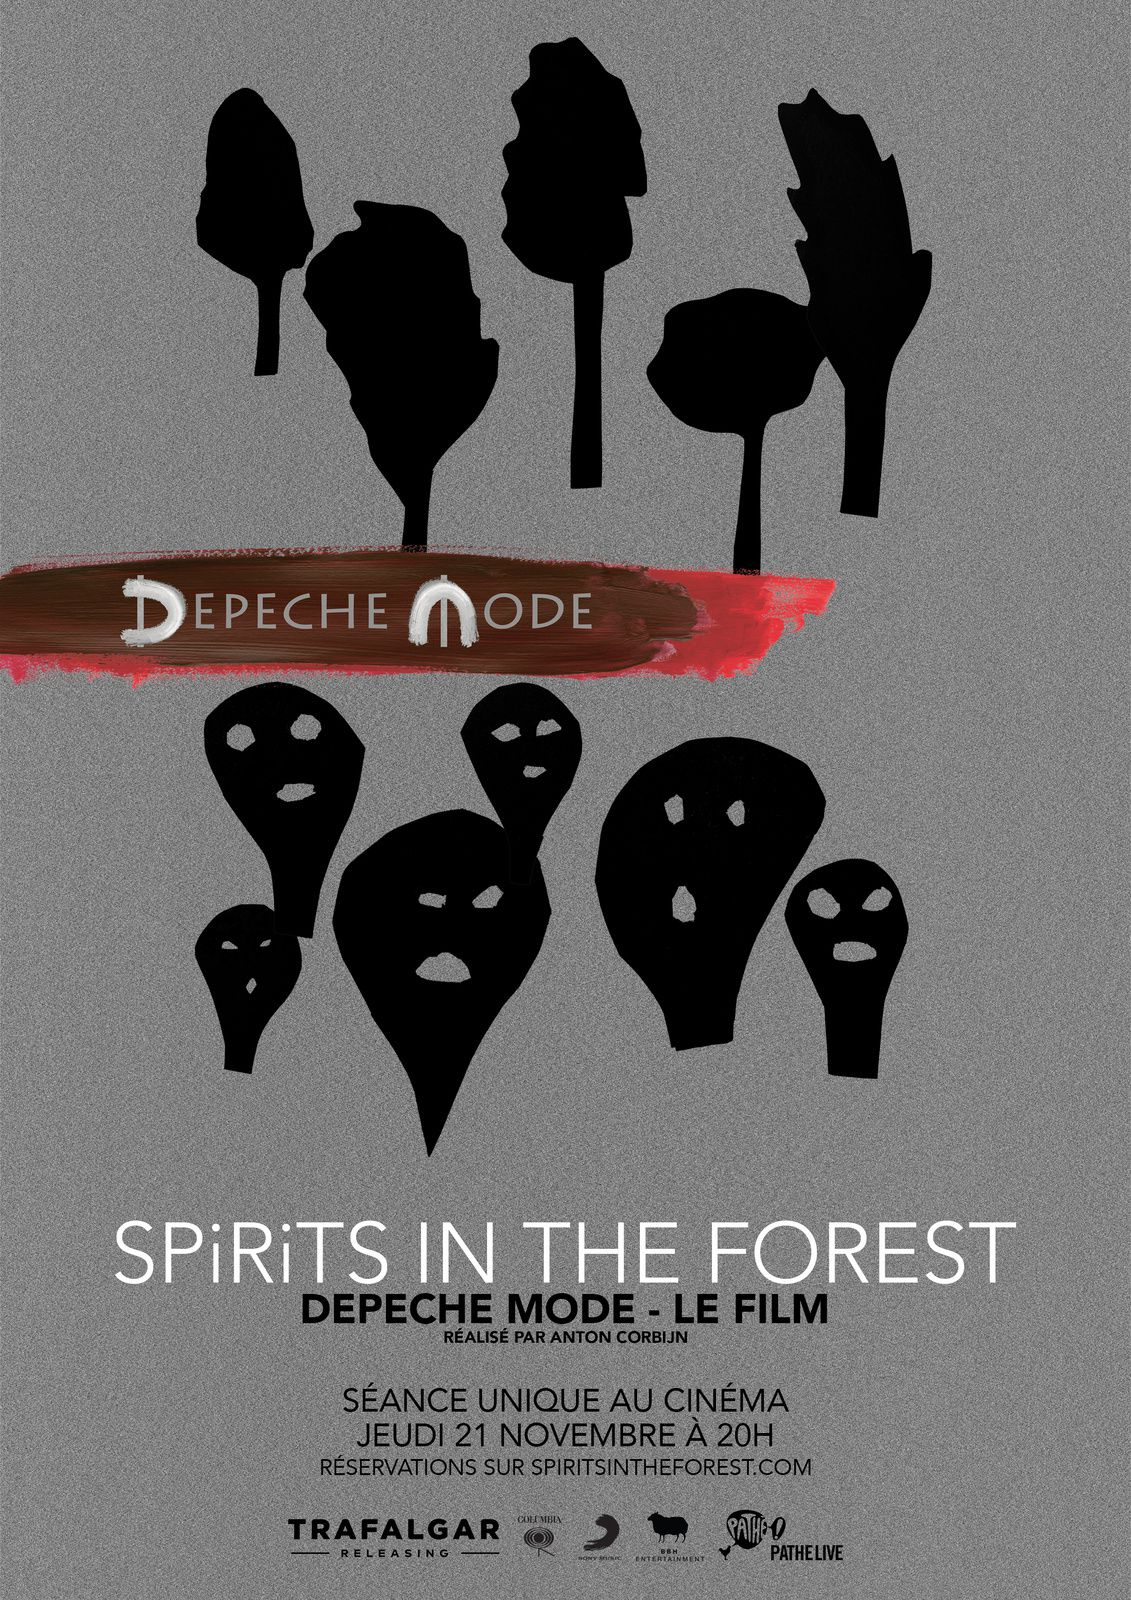 Depeche Mode : Spirits in the Forest (TEASER) au cinéma le 21 novembre 2019 - 20 h.